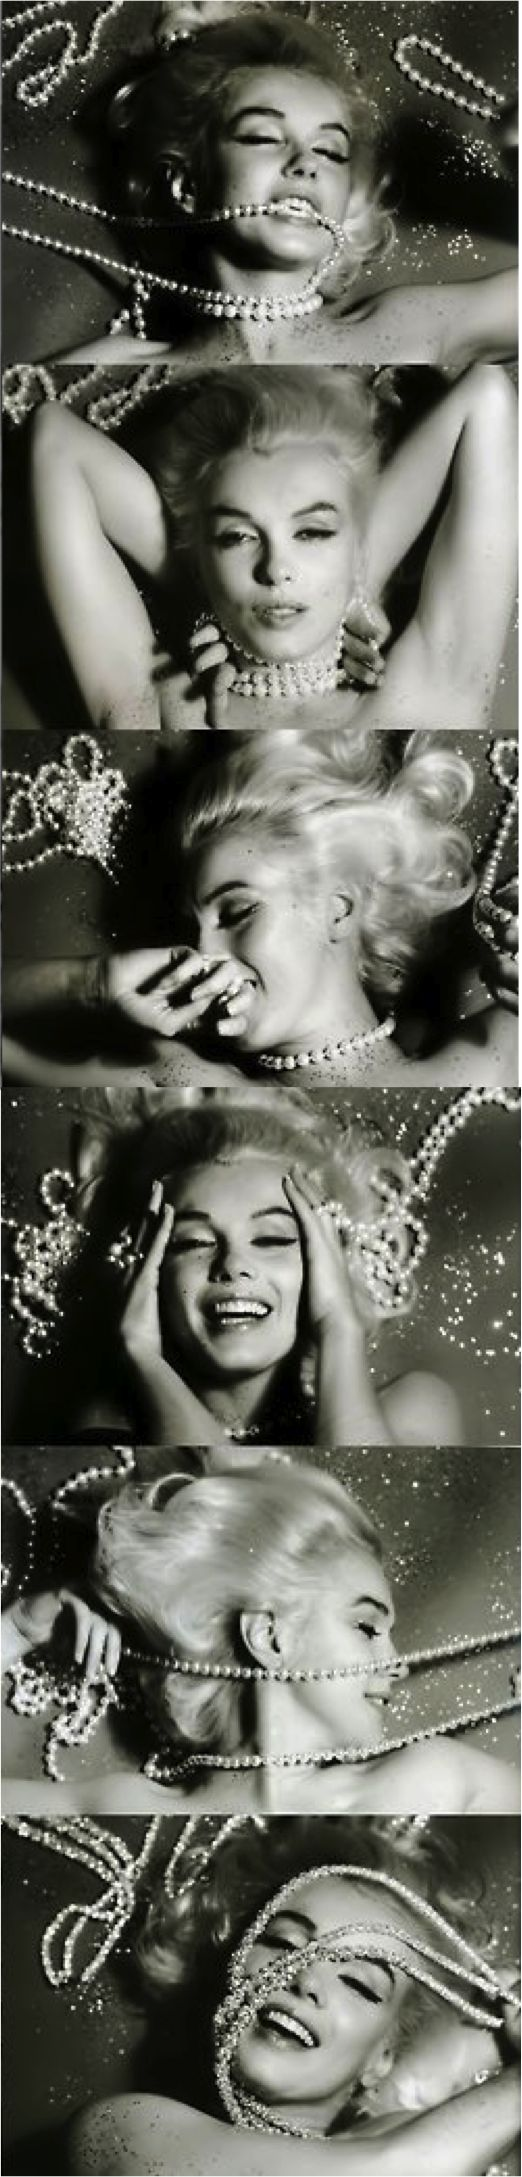 Marilyn Monroe by Bert Stern - 1962